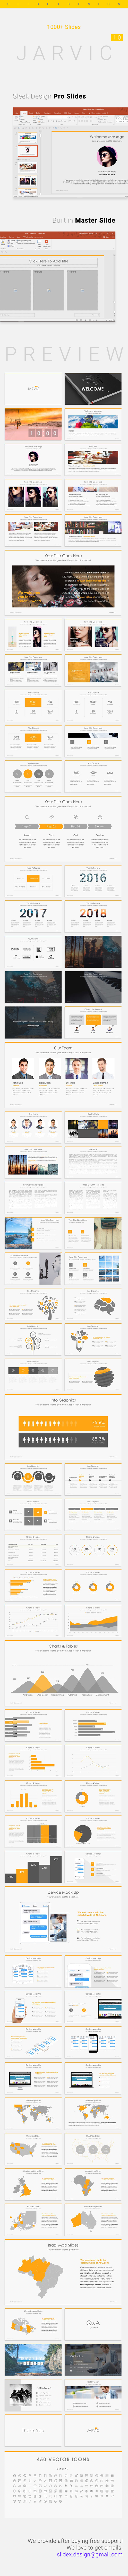 Jarvic PowerPoint - Business PowerPoint Templates